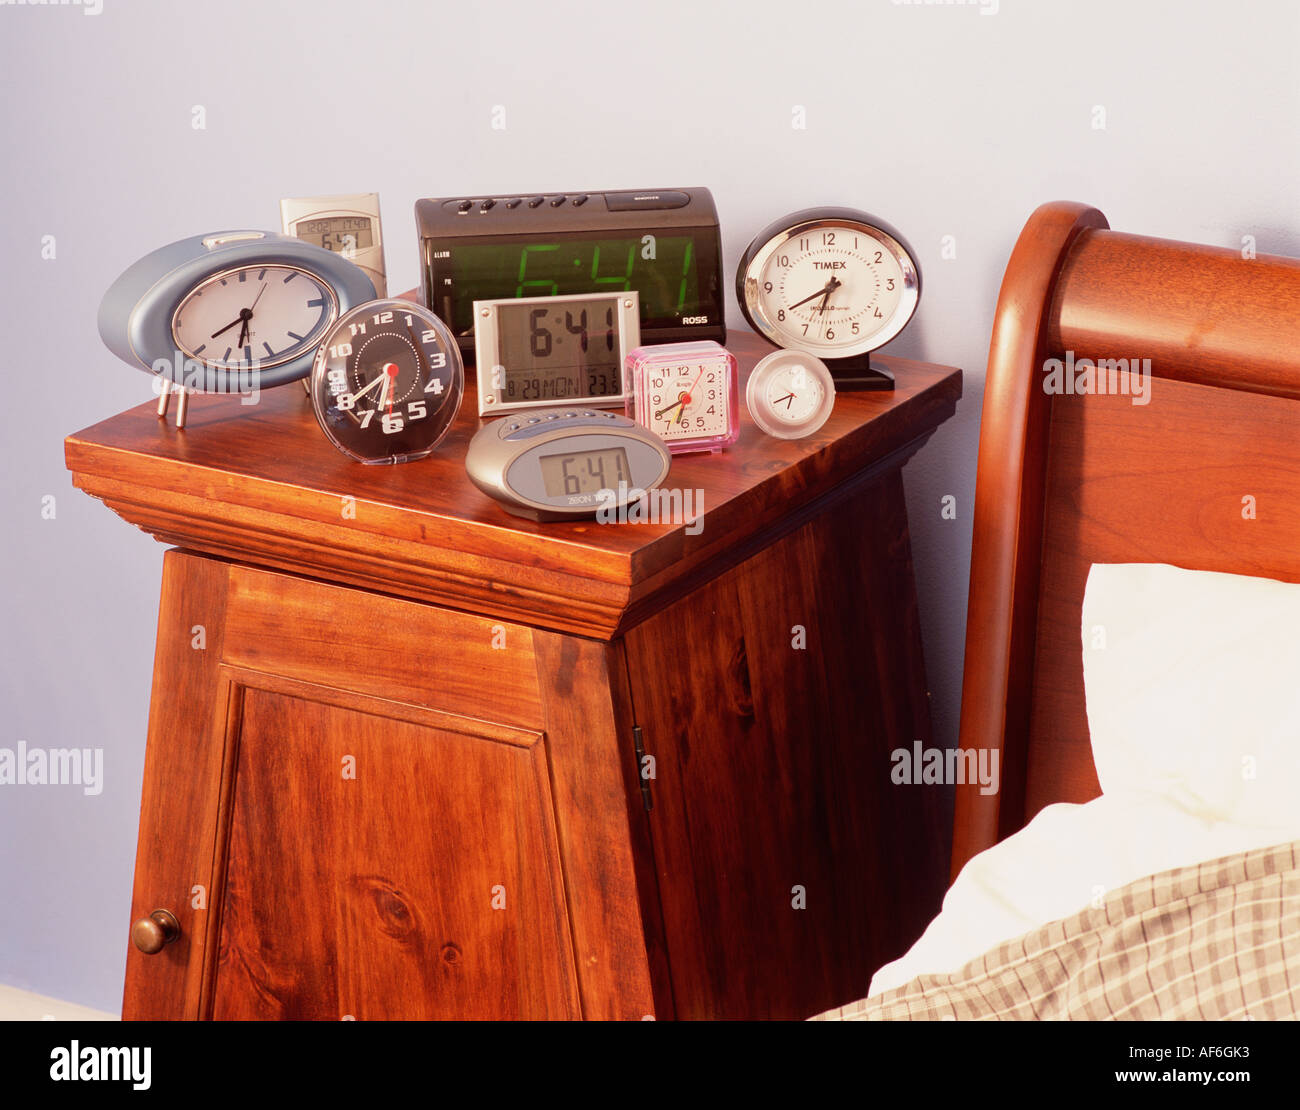 Bedside Table Clocks Bed Time Routine Night Stock Photos And Bed Time Routine